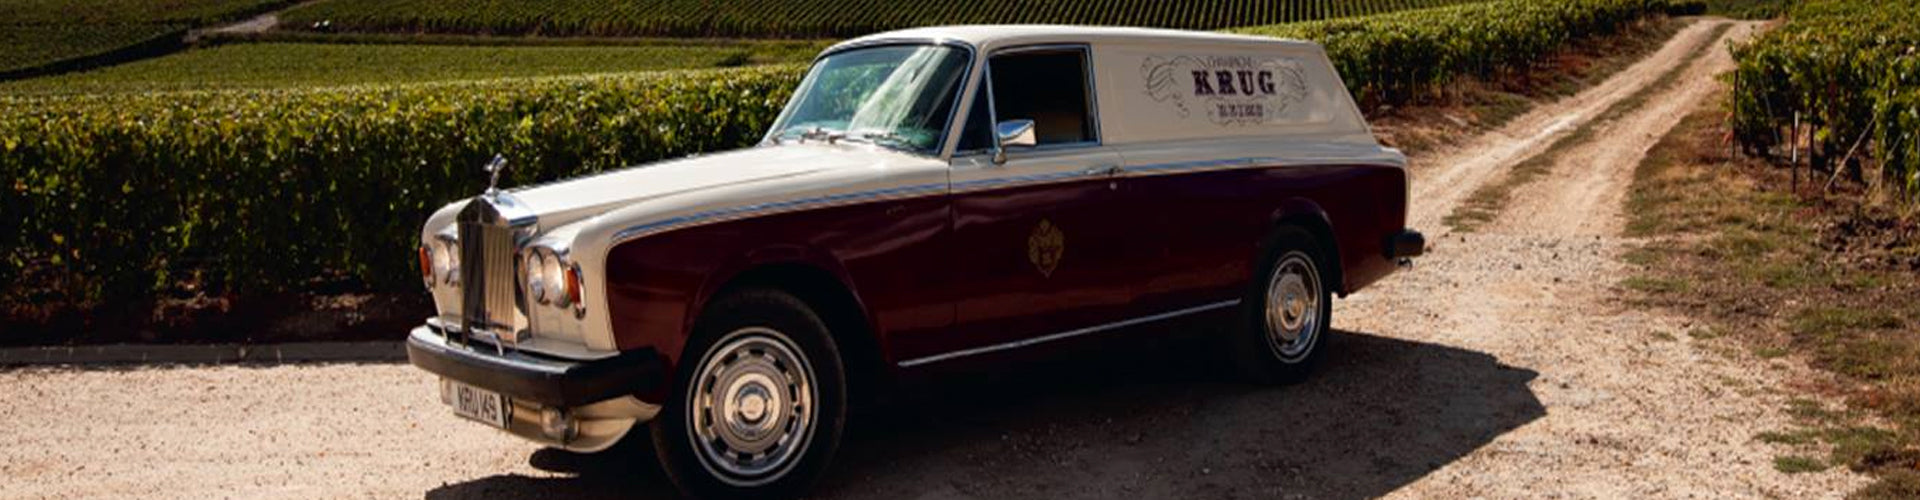 Krug Bespoke Rolls Royce in Vineyards